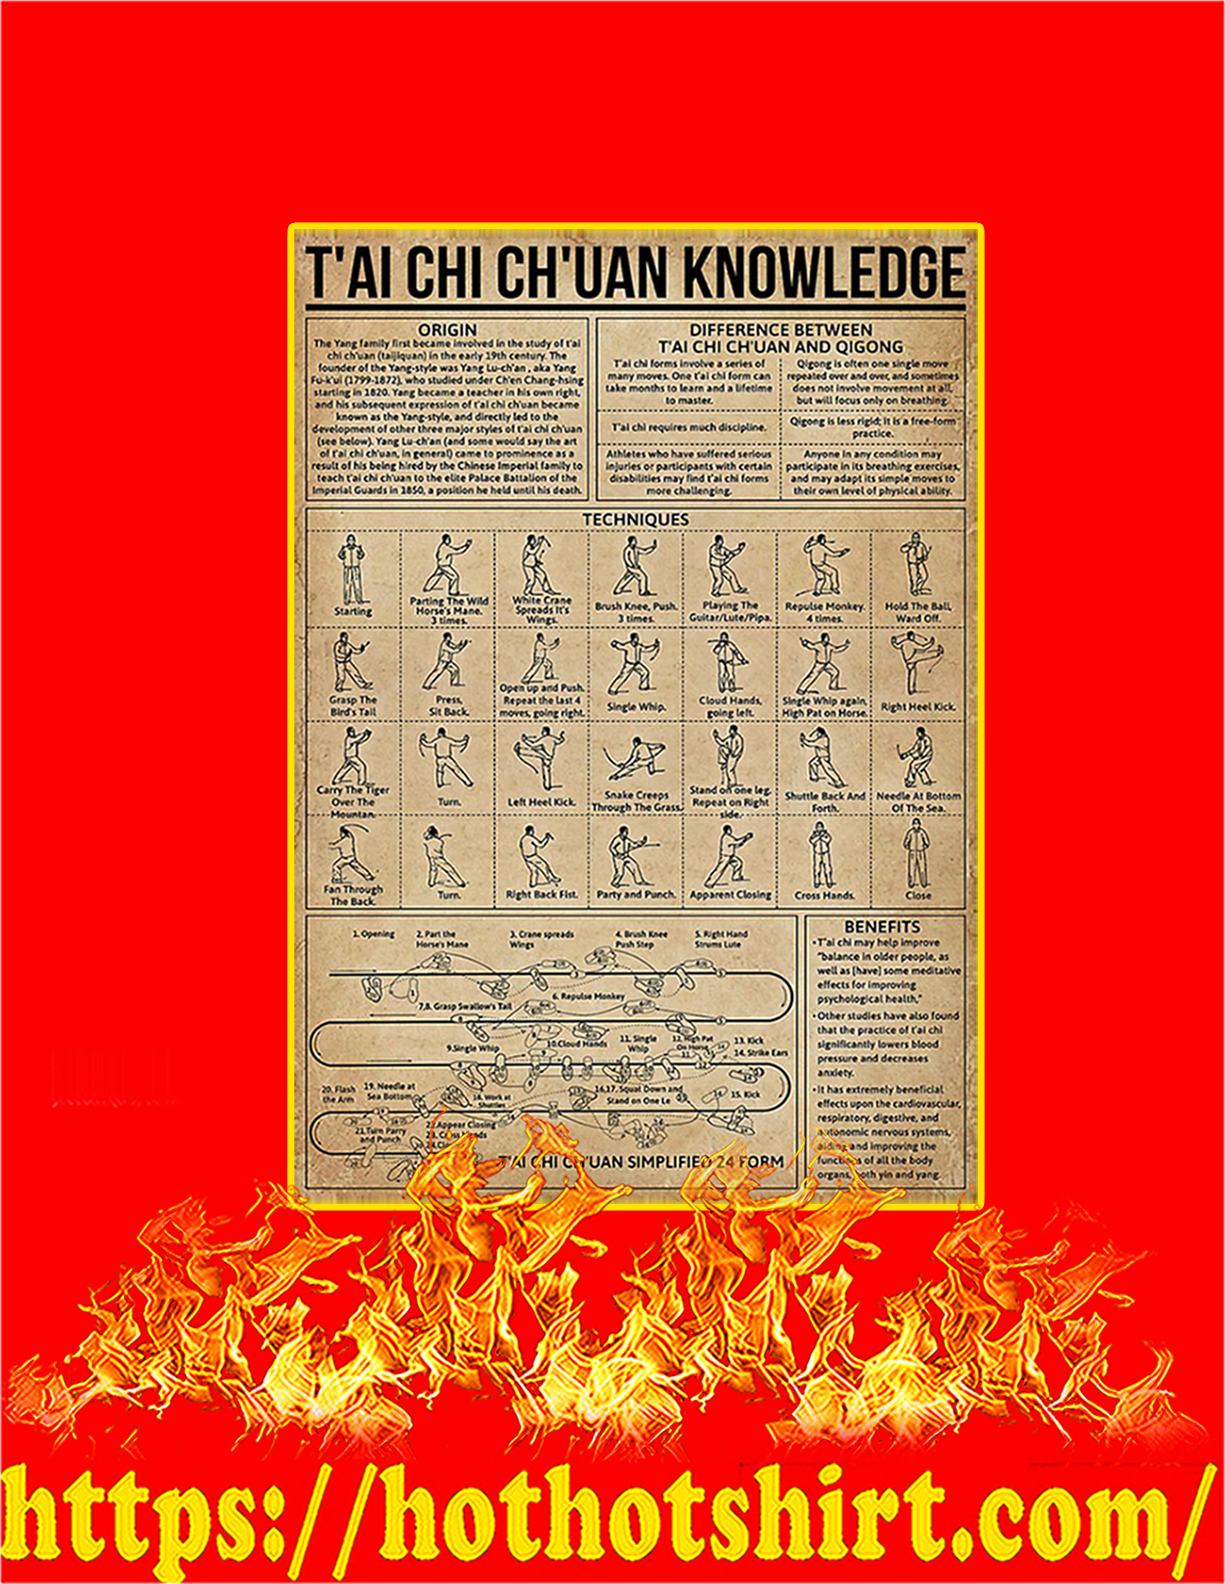 T'ai chi ch'uan knowledge poster - A4